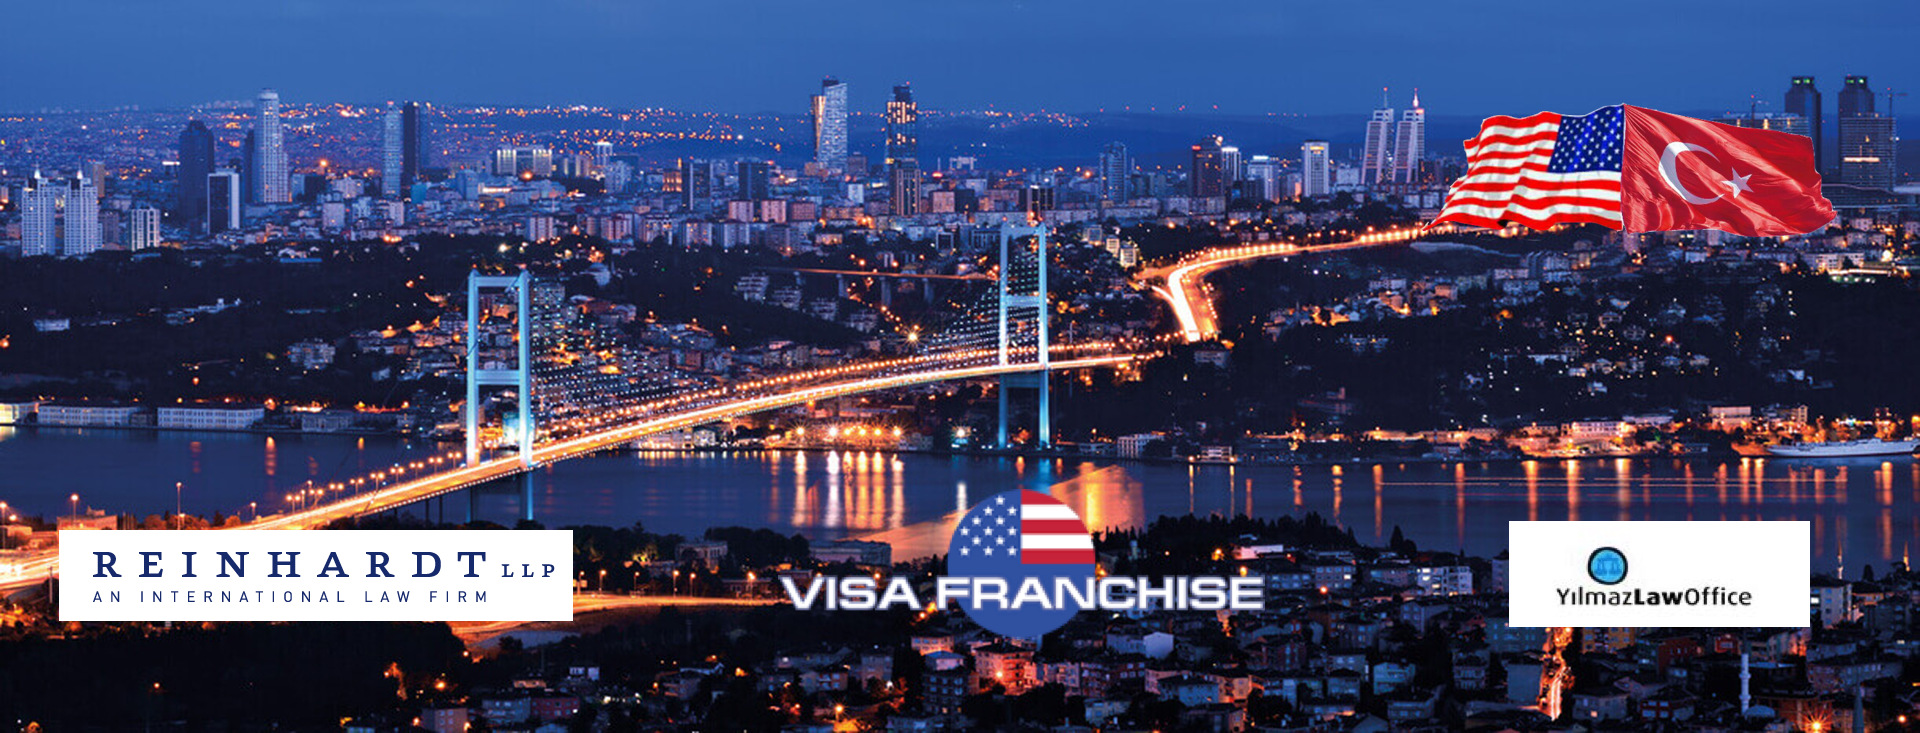 visa-franchise-turkey-event